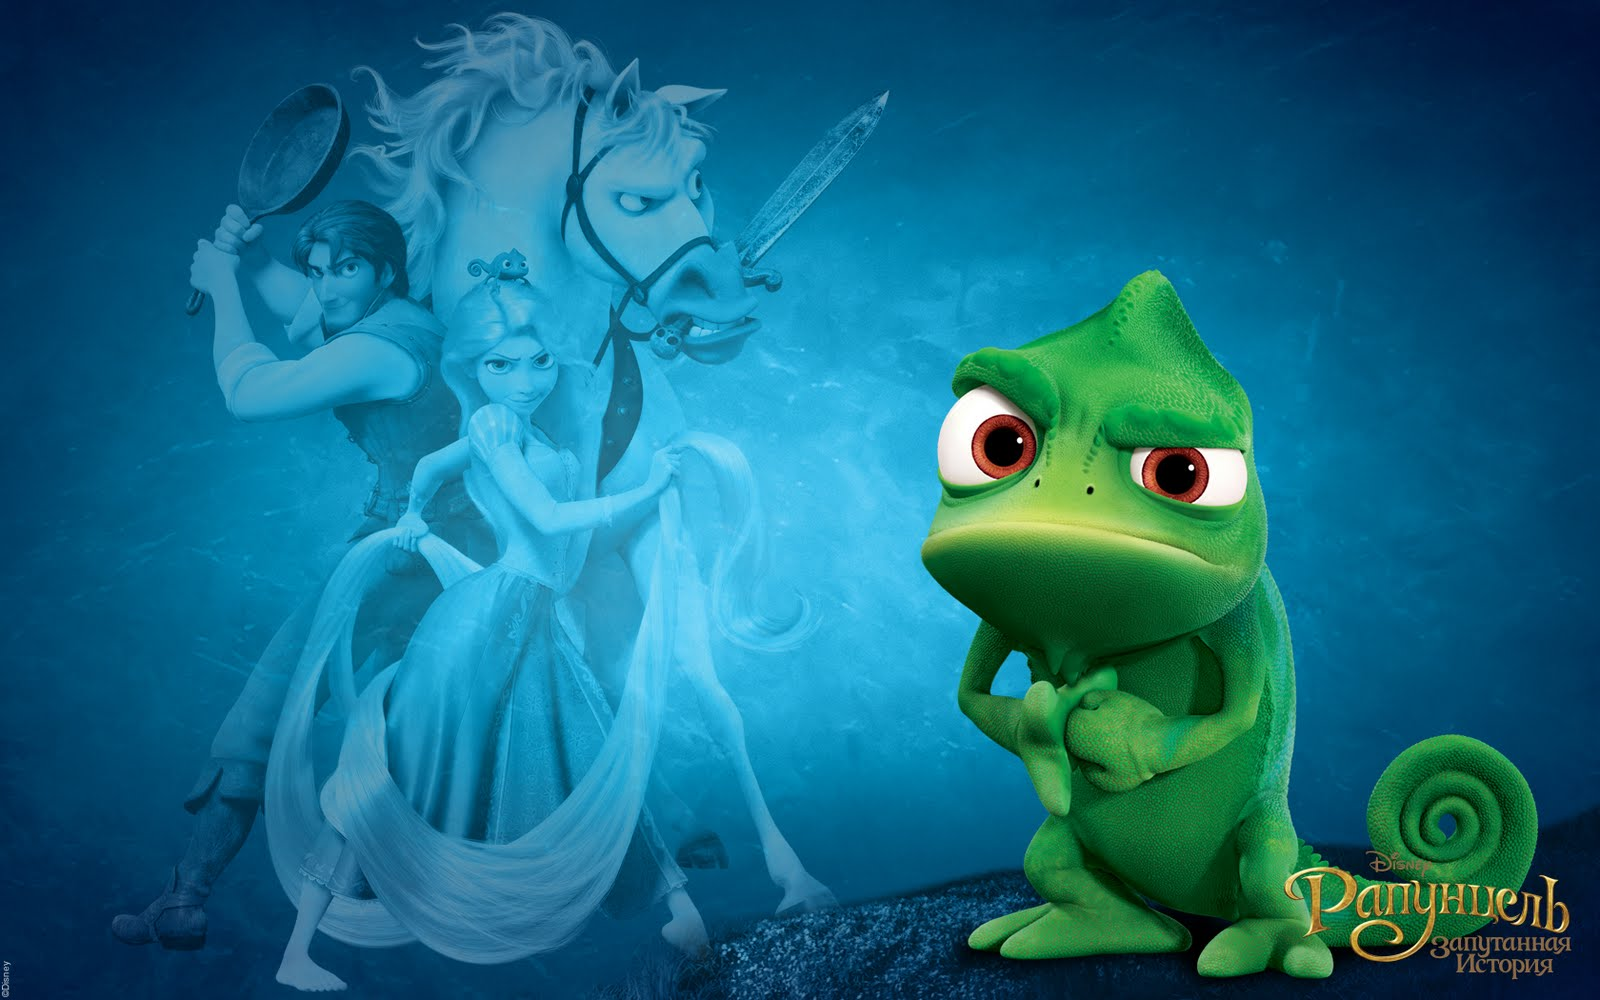 wallpapers tangled pascal 1680x1050 wallpapers for Disney tangled 1600x1000